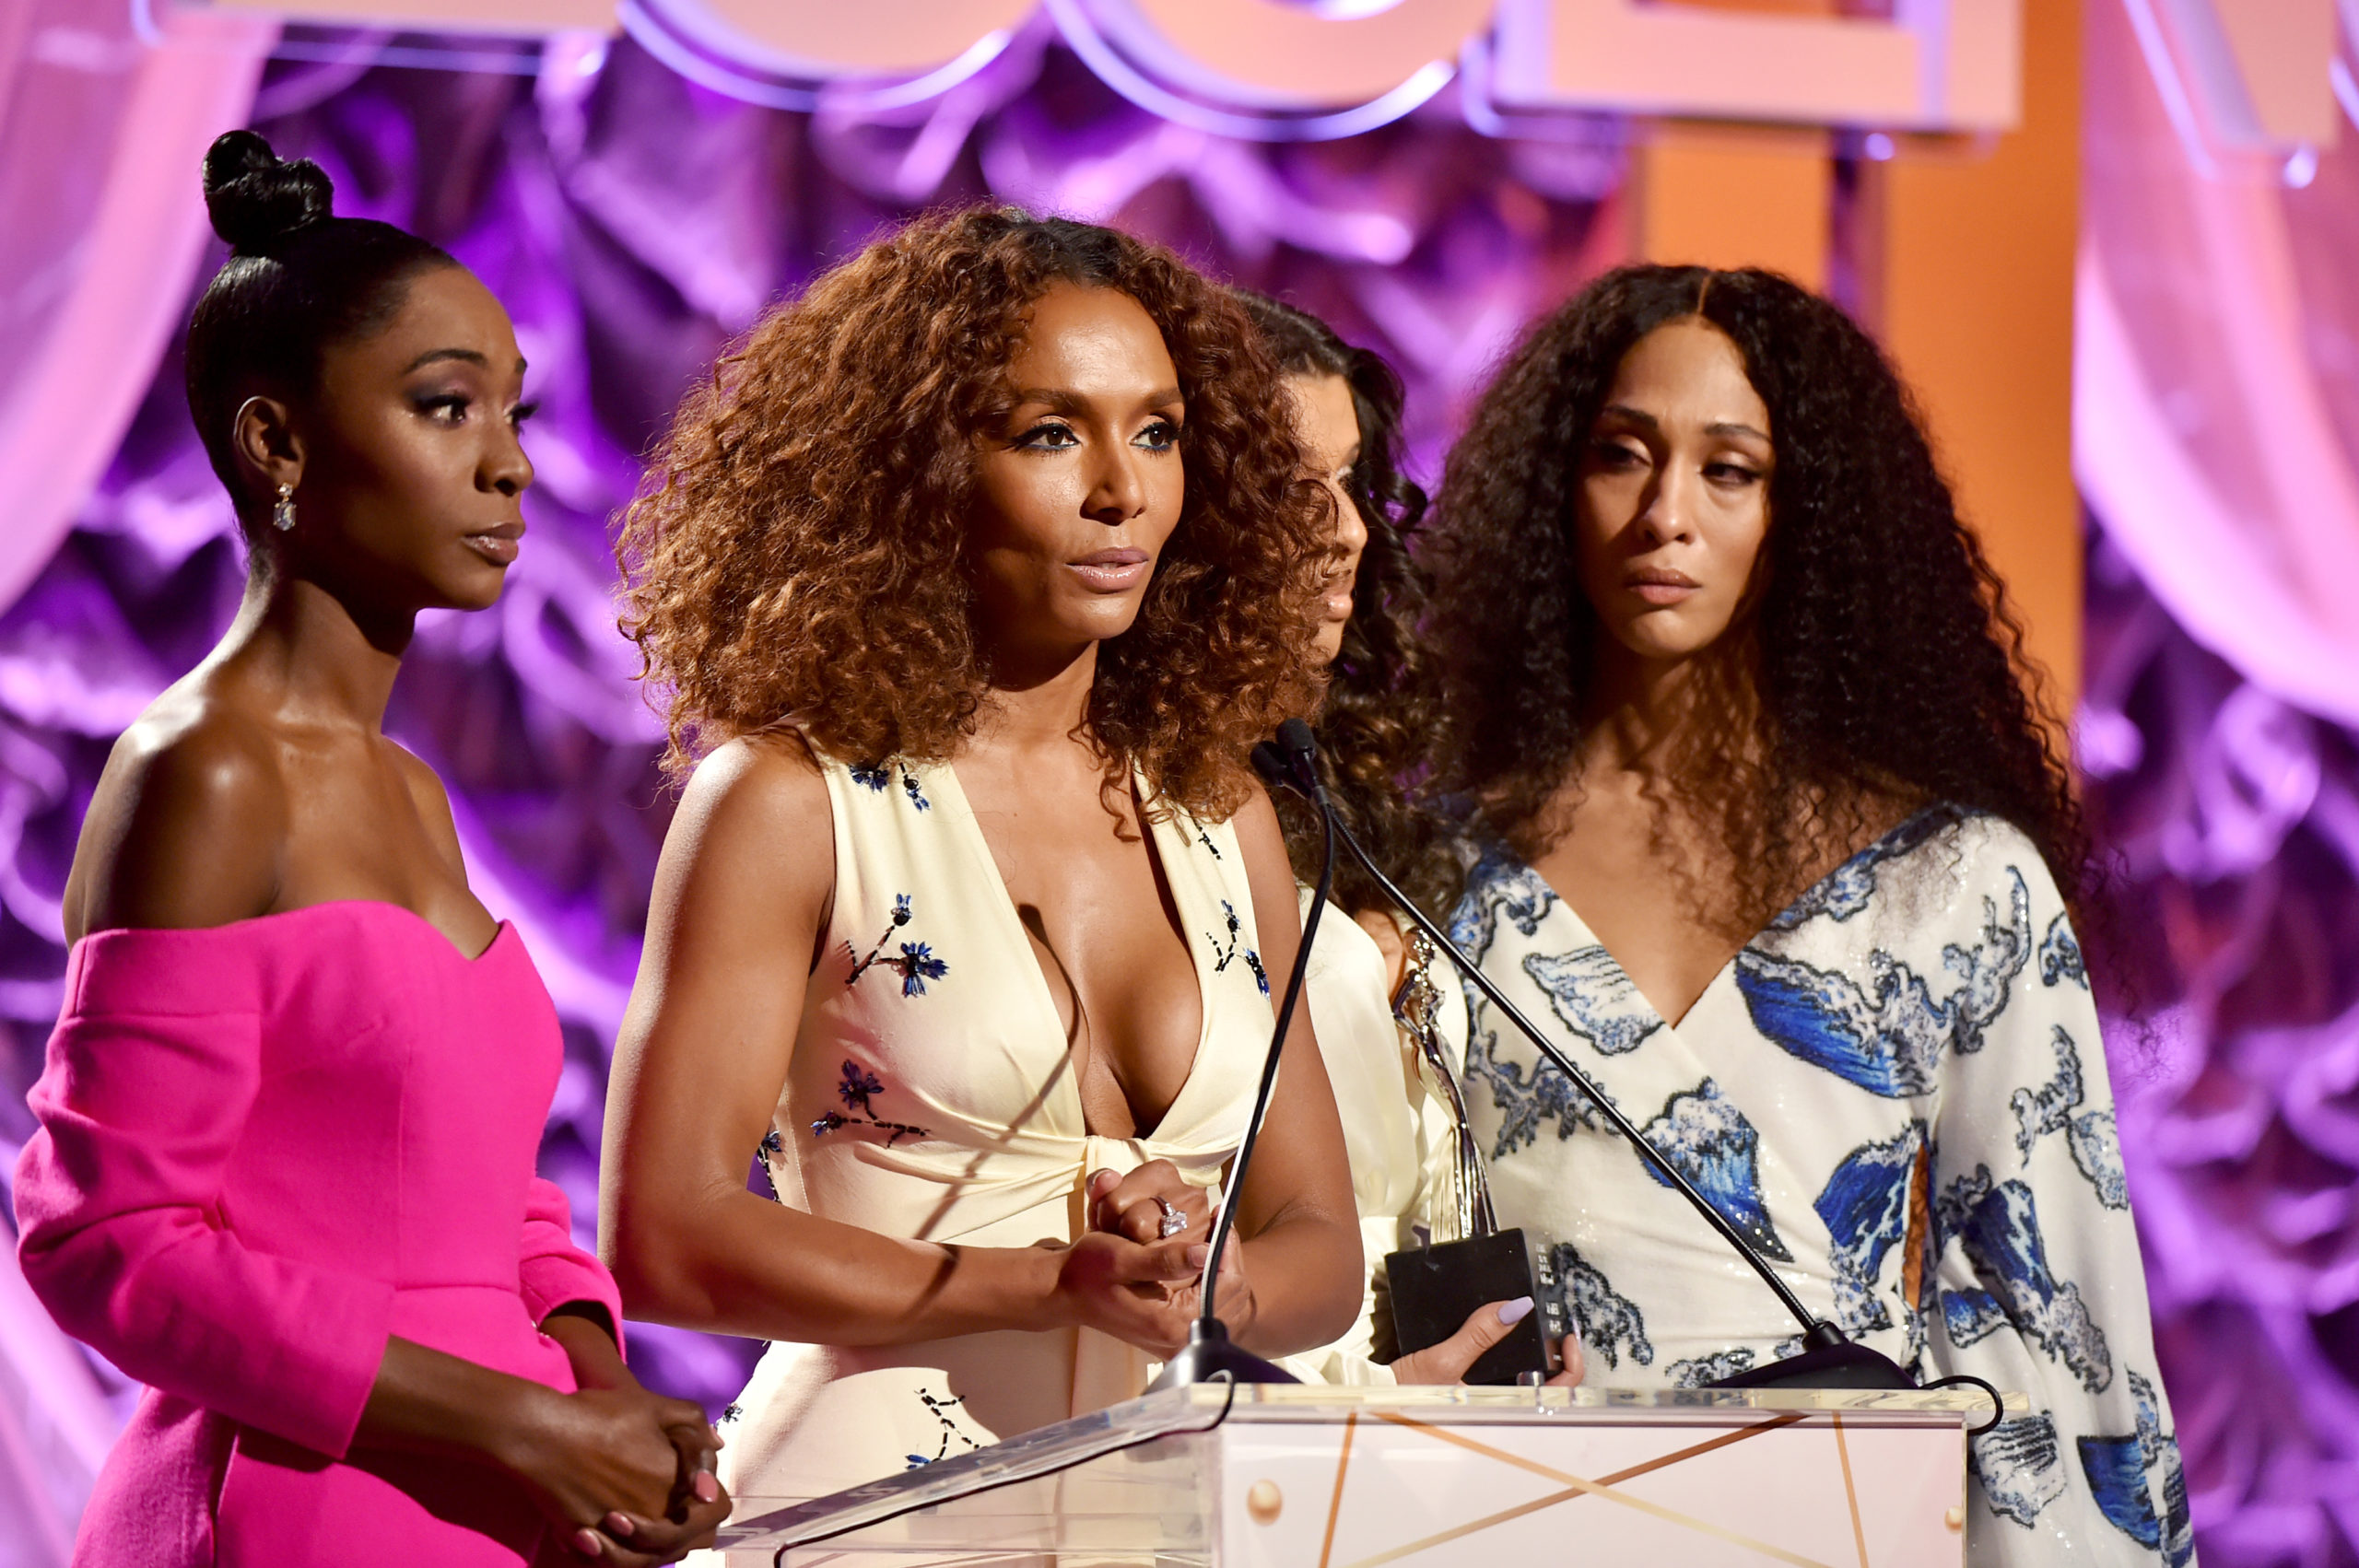 Pose cast and creatives Angelica Ross, Janet Mock, Hailie Sahar and Mj Rodriguez speak onstage during the 2020 13th Annual ESSENCE Black Women in Hollywood Luncheon